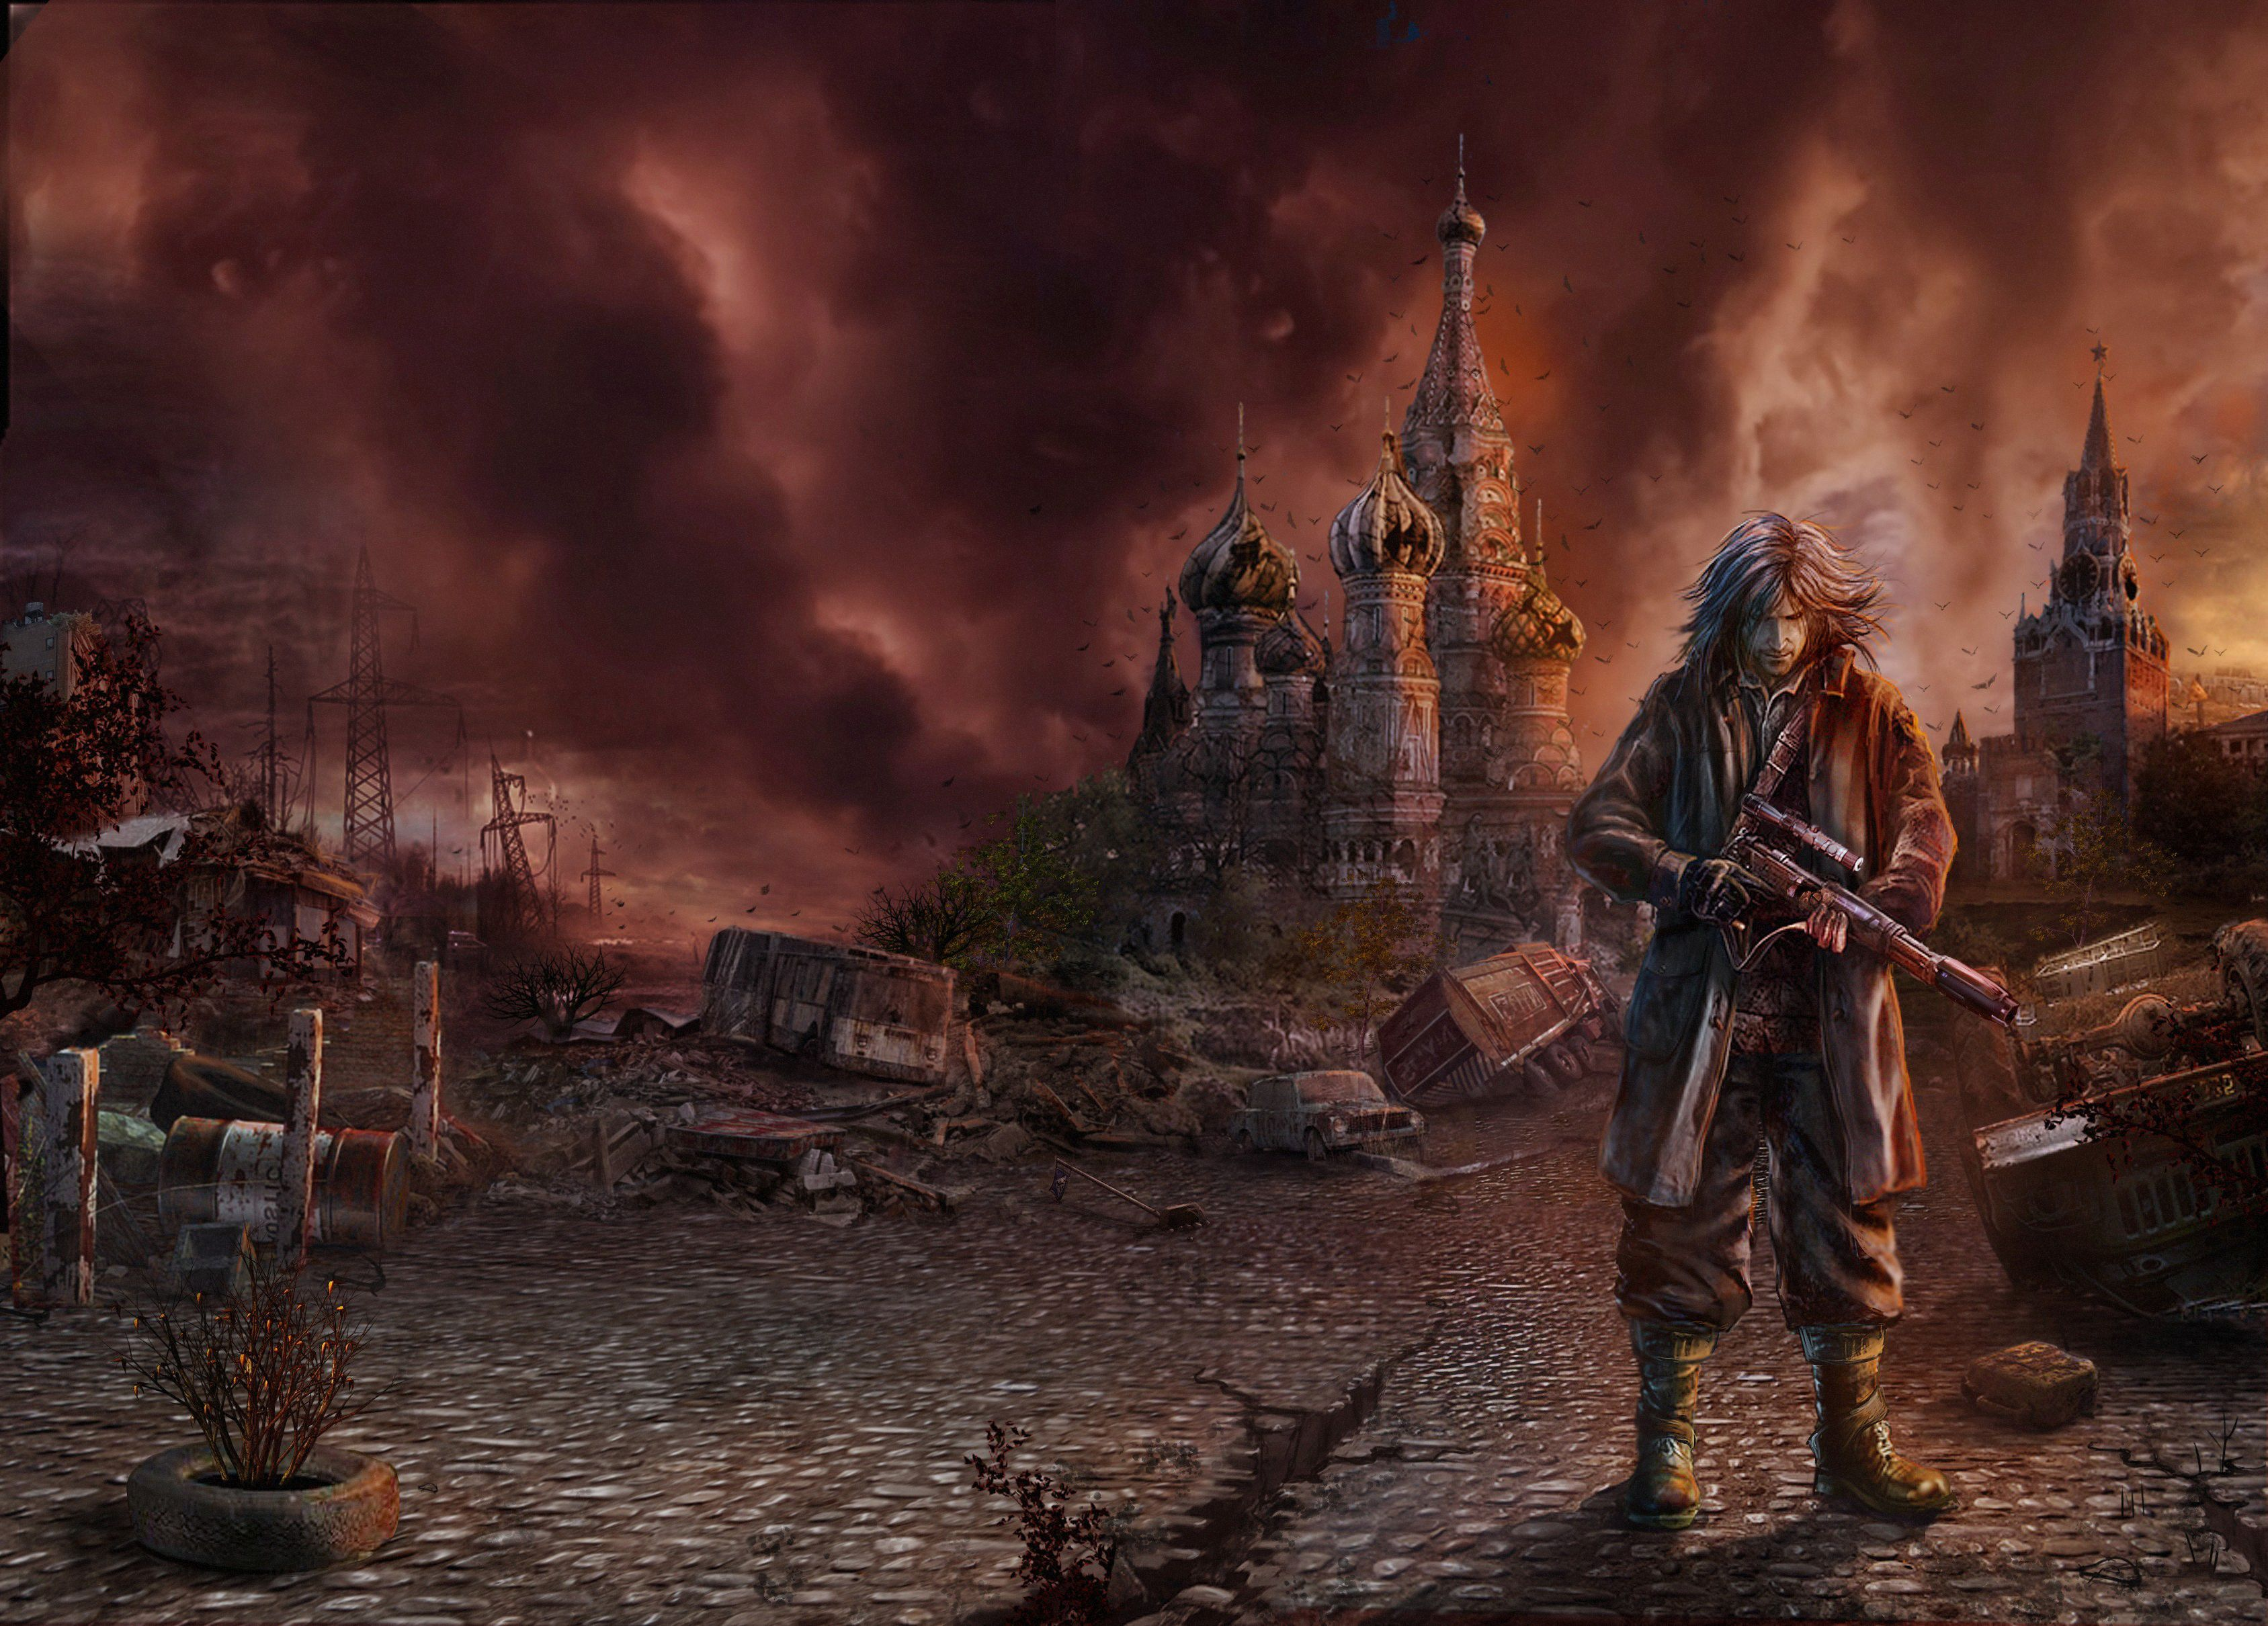 Apocalyptic Moscow Man Warriors Fantasy Prince Persia Sci Fi Wallpaper Background Post Apocalyptic Fantasy City Sci Fi Wallpaper